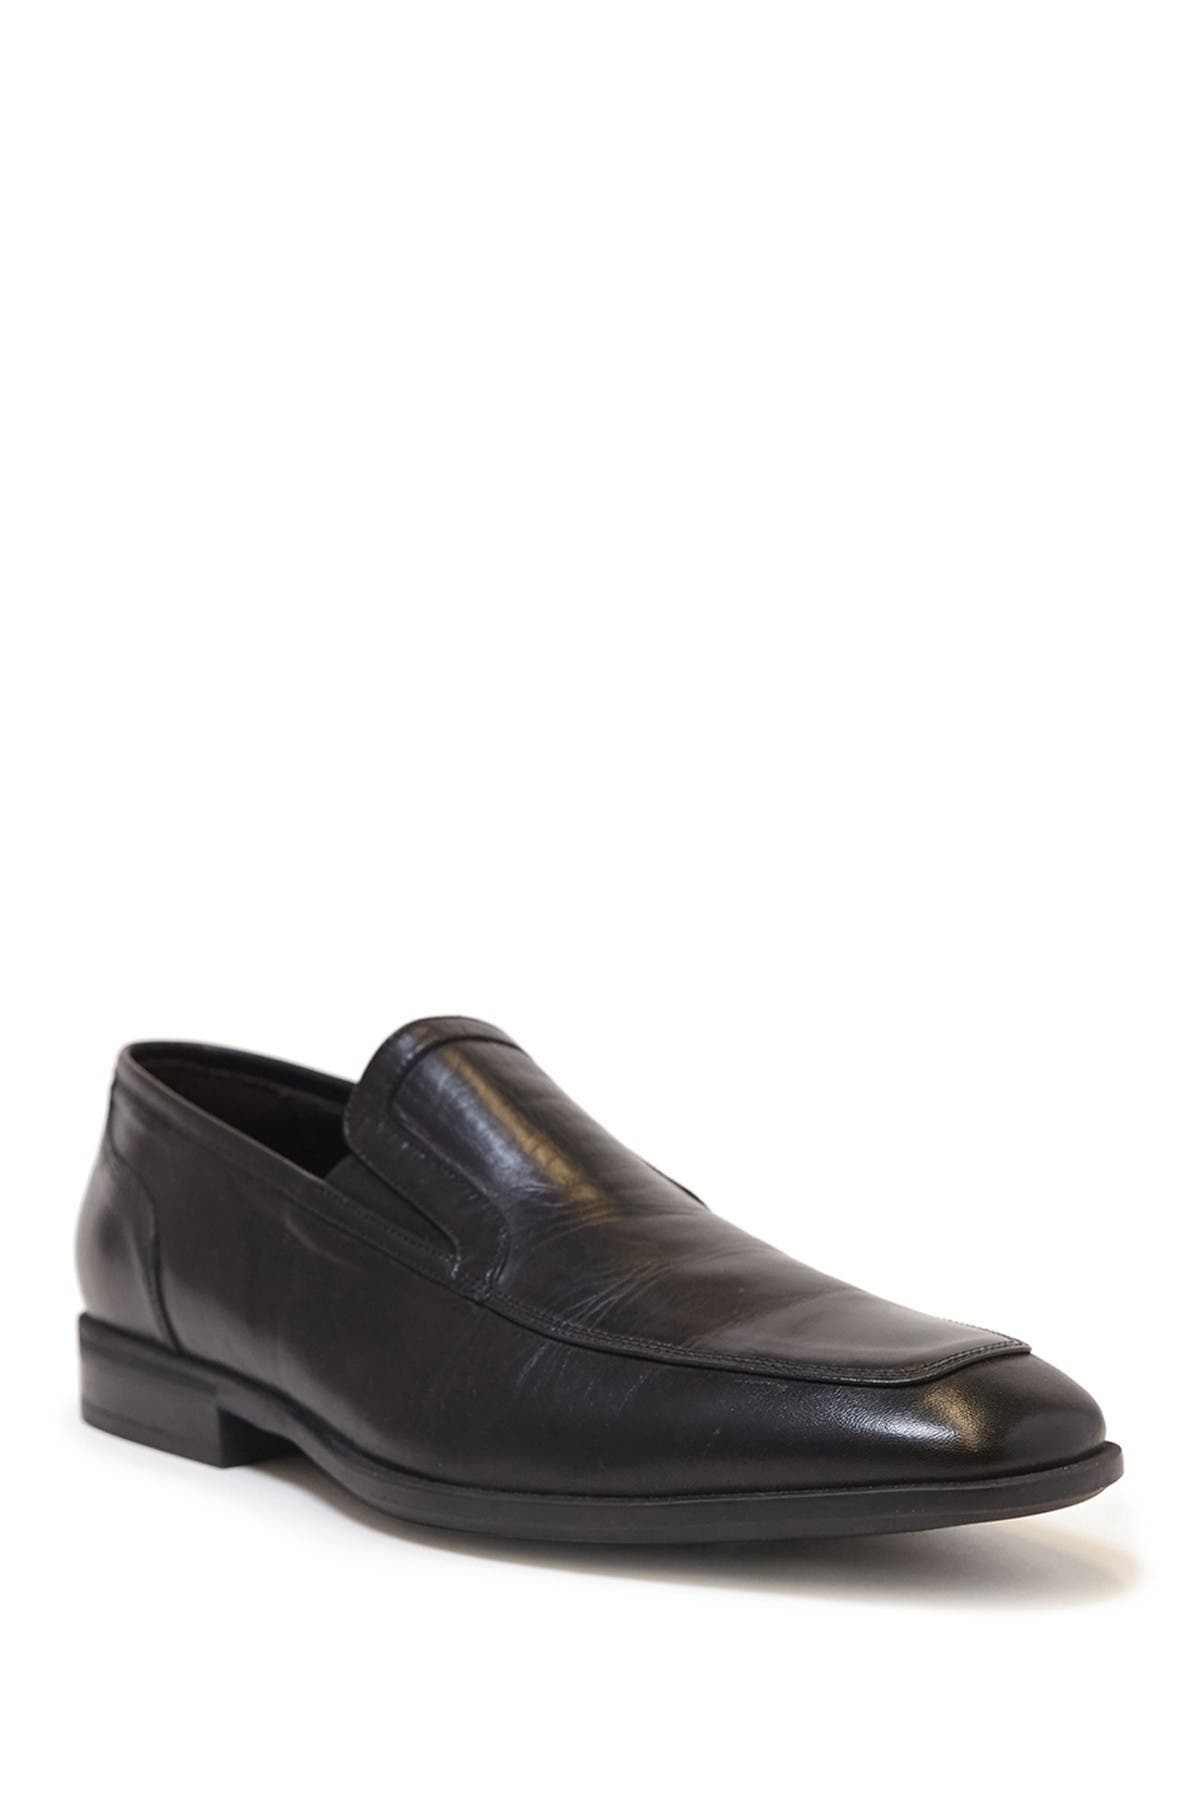 Image of Bruno Magli Firenze Slip-On Shoe